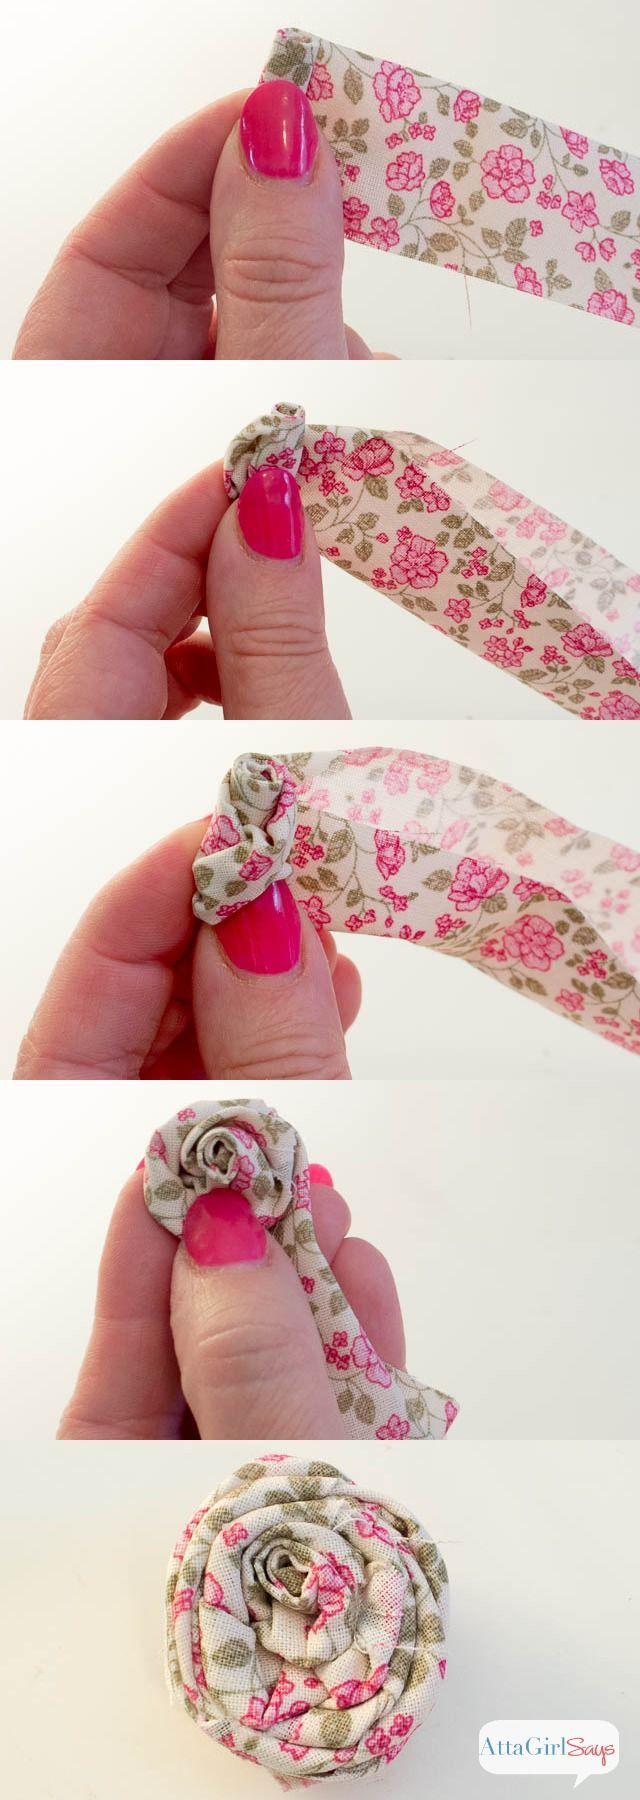 diy no sew ribbon flowers - photo #12